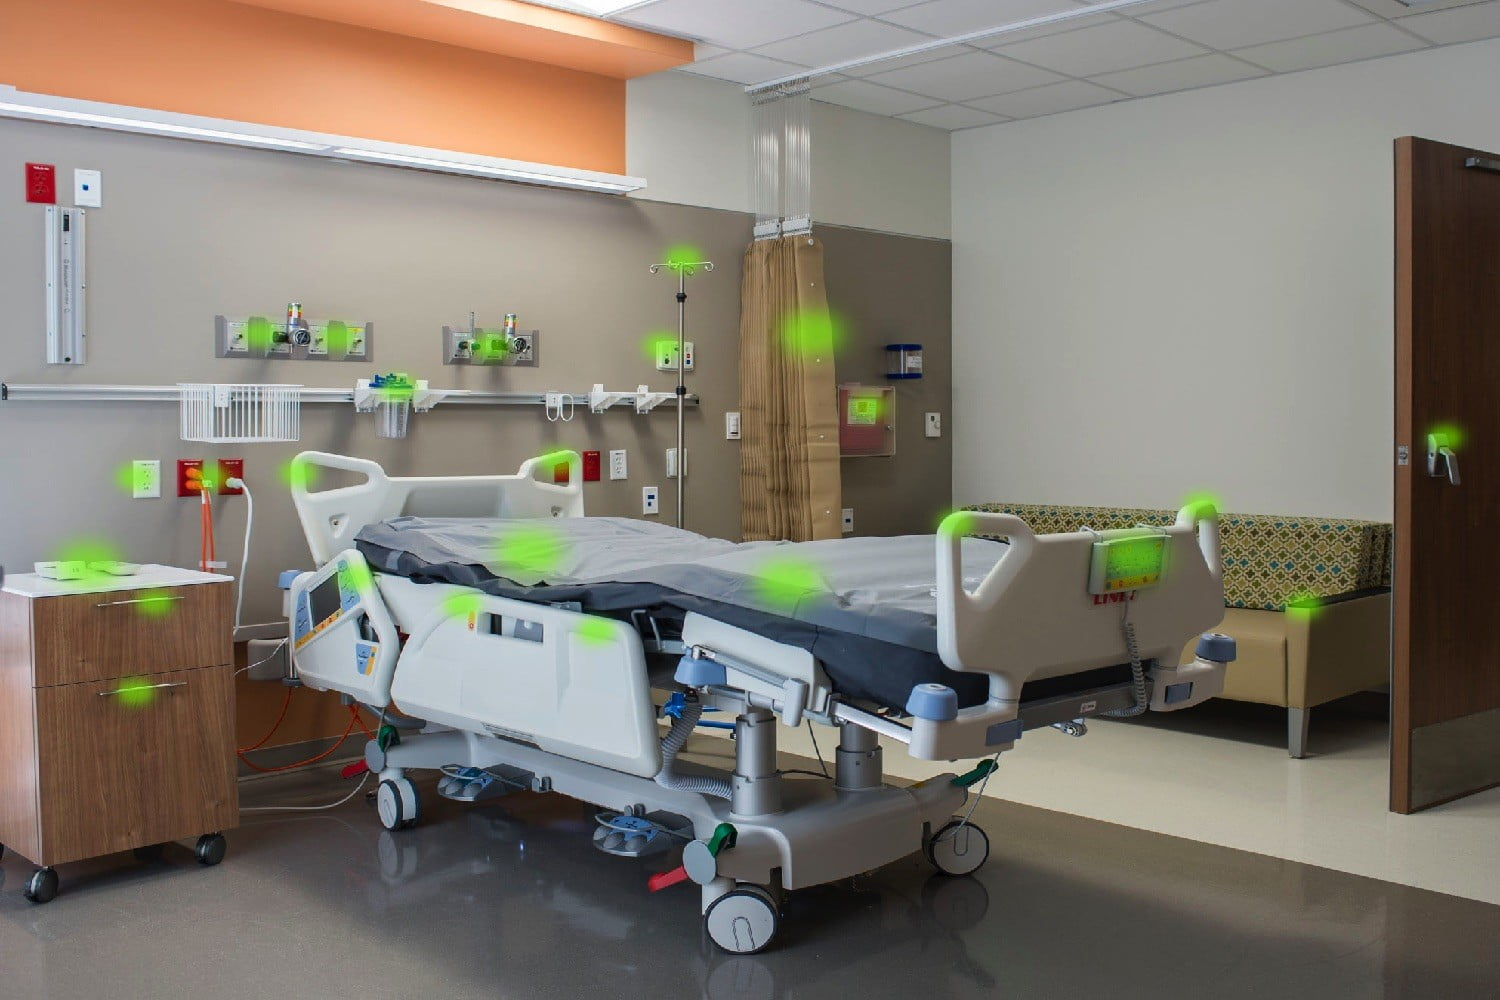 superbug zapping robot new jersey high touch areas in a hospital room